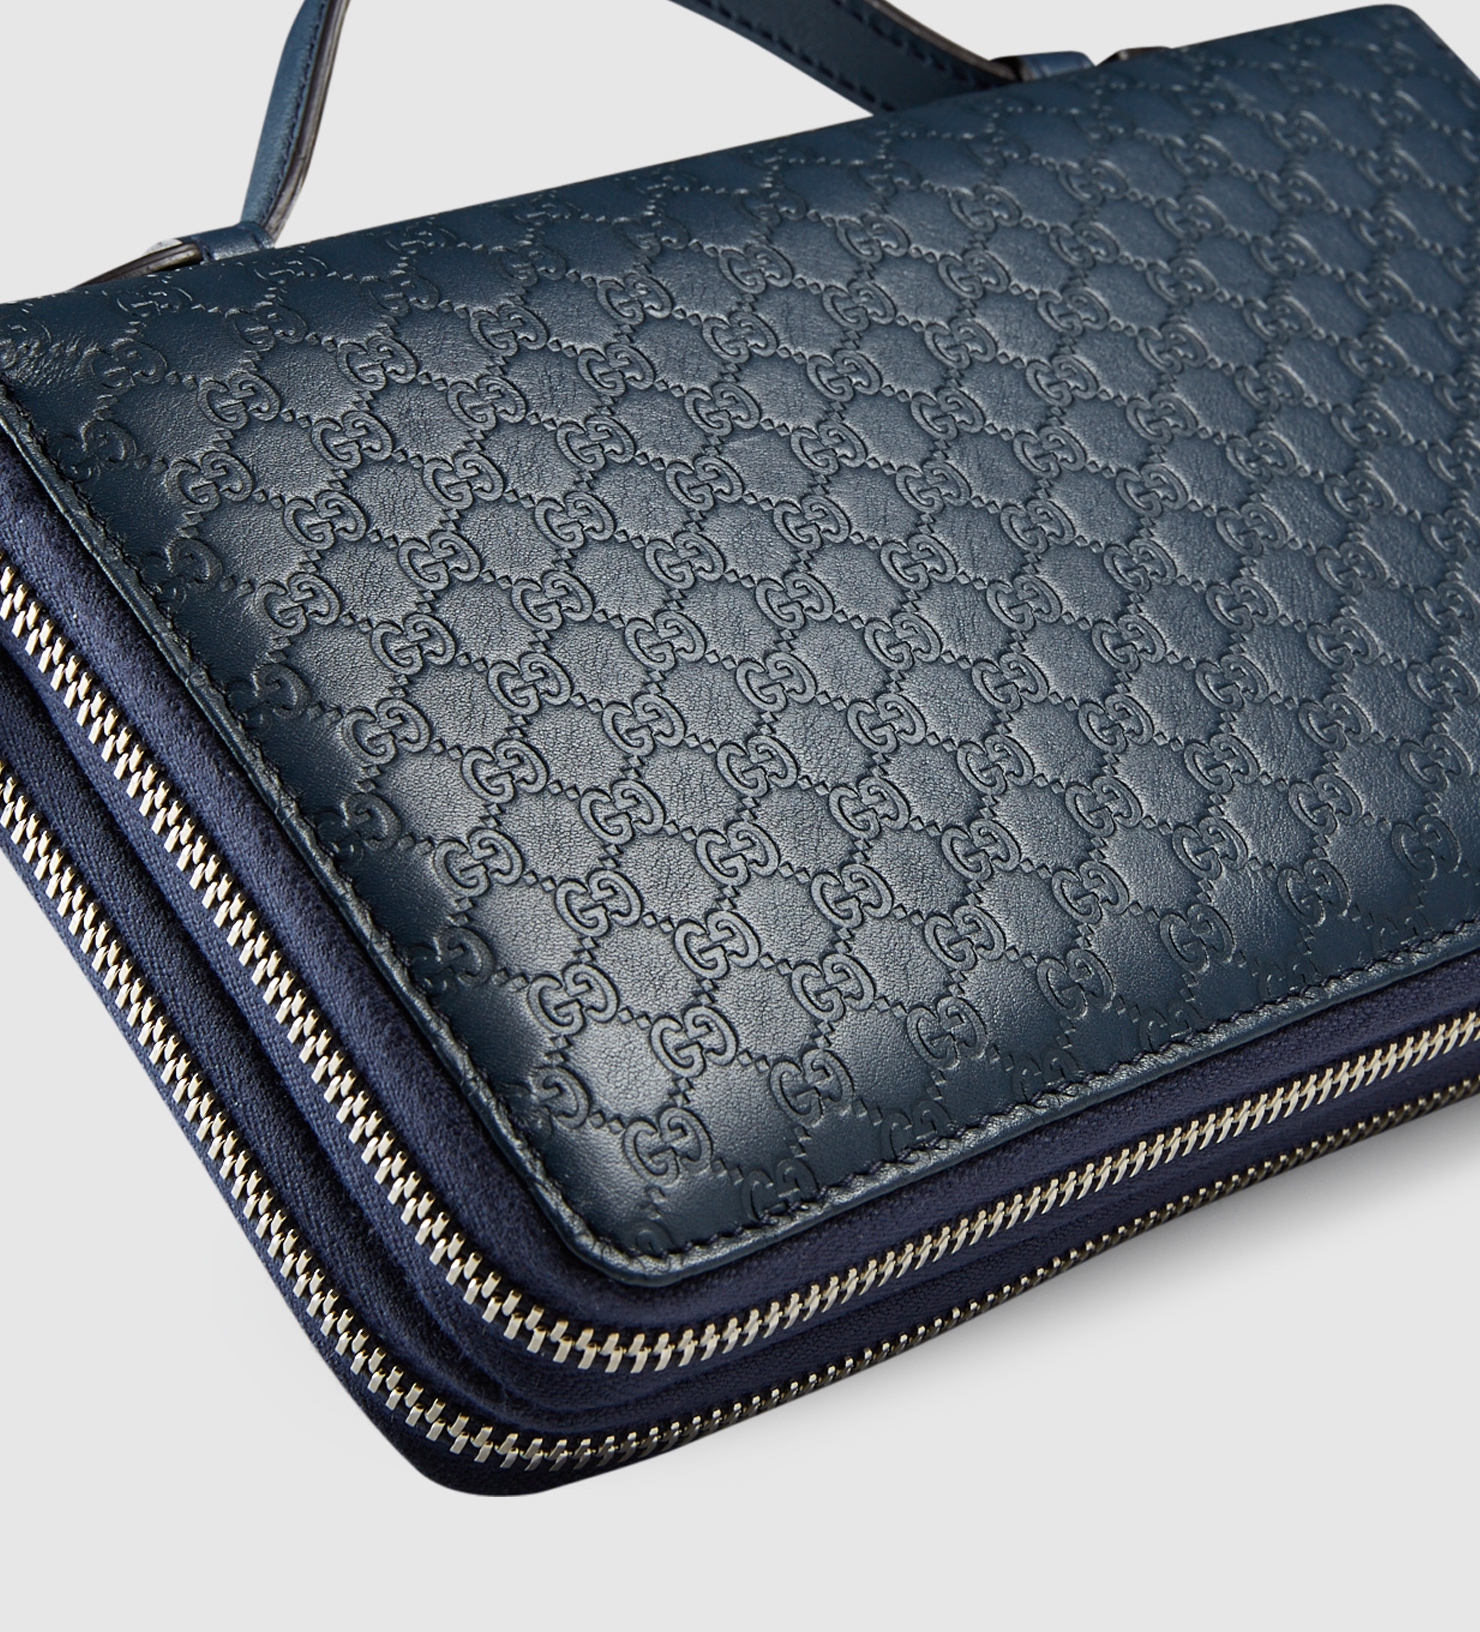 69f26ee0 Gucci Microssima Leather Travel Document Case in Blue for Men - Lyst